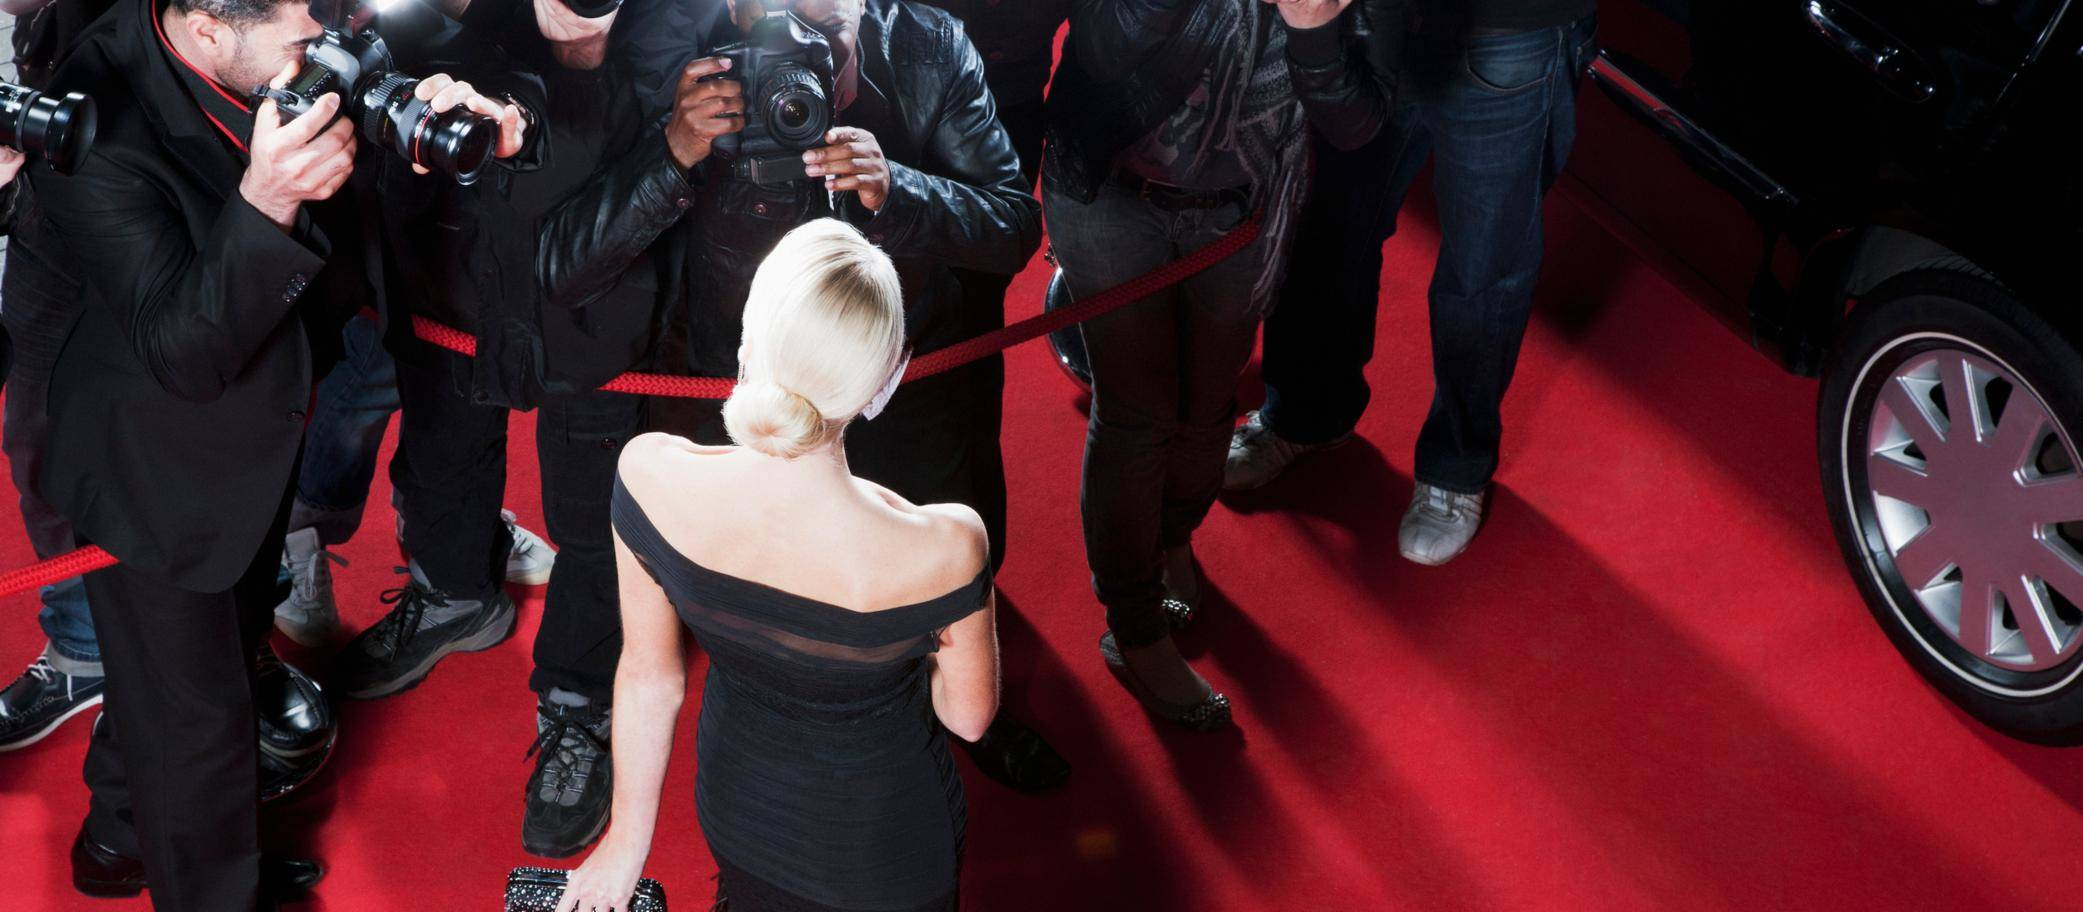 Amazing stories: cameramen taking pictures of a woman on the red carpet